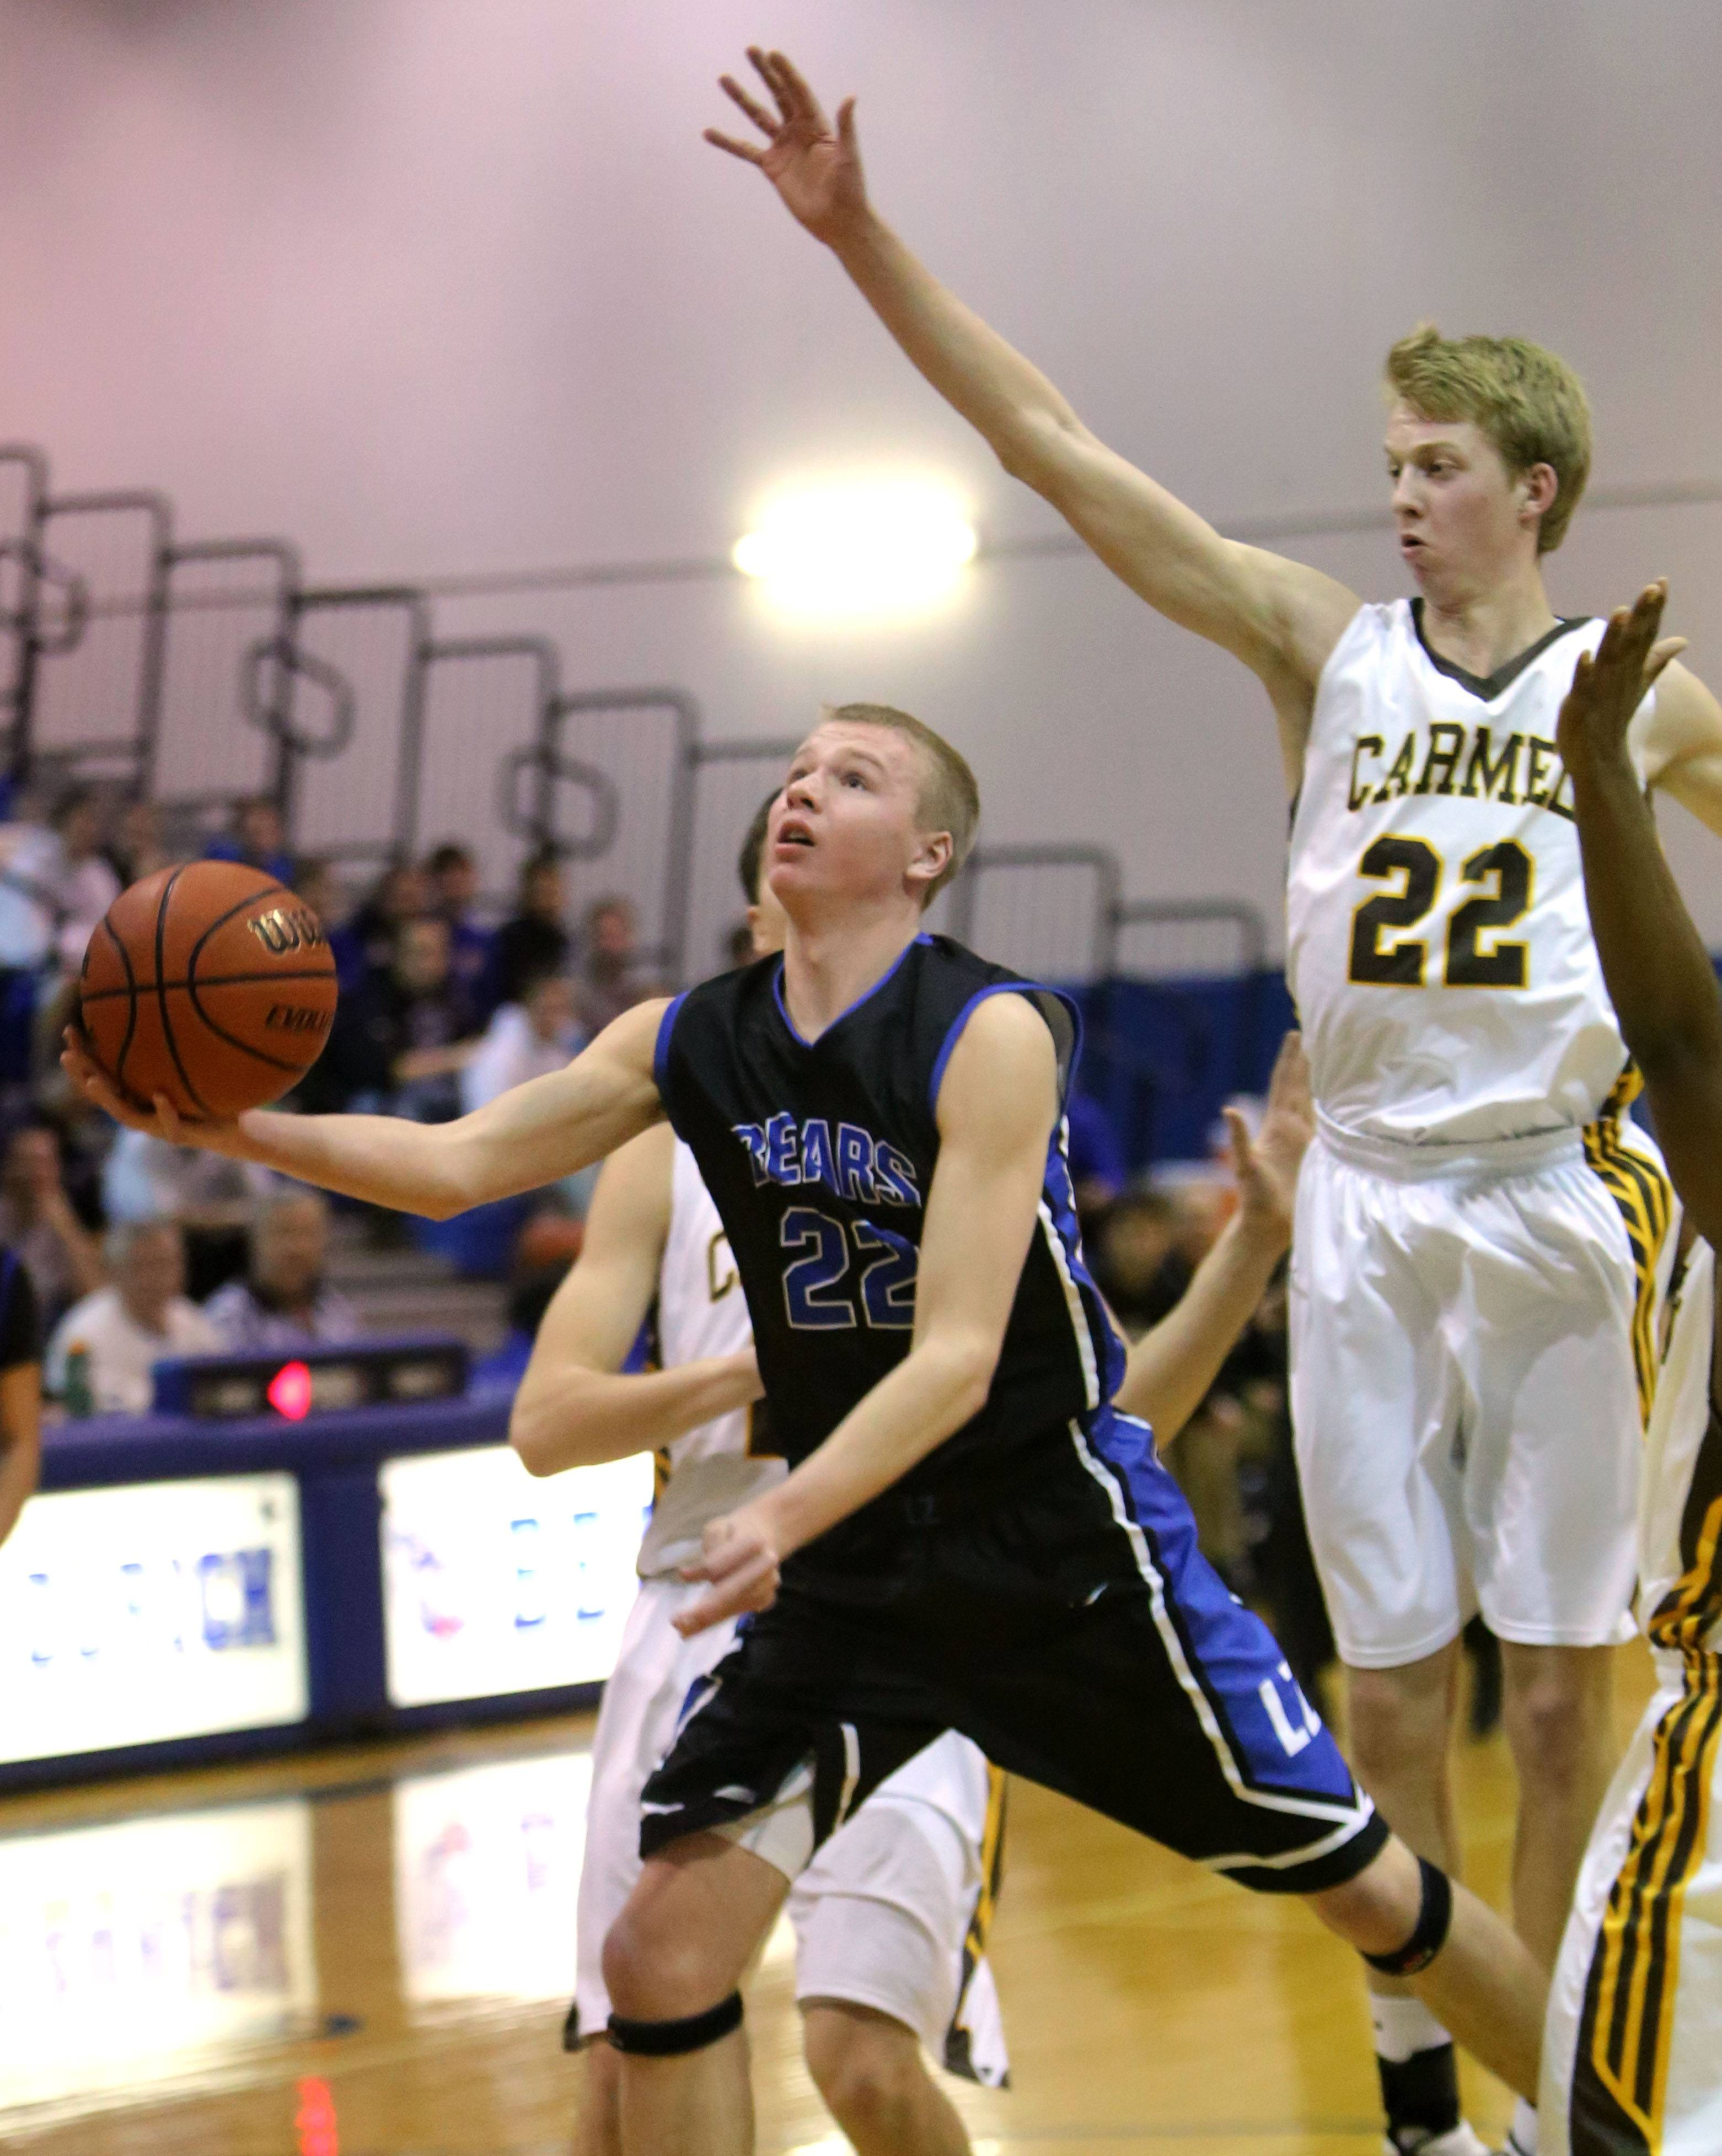 Carmel's Michael Barr defends during the 2nd annual Lake Zurich Martin Luther King Classic at Lake Zurich High School.